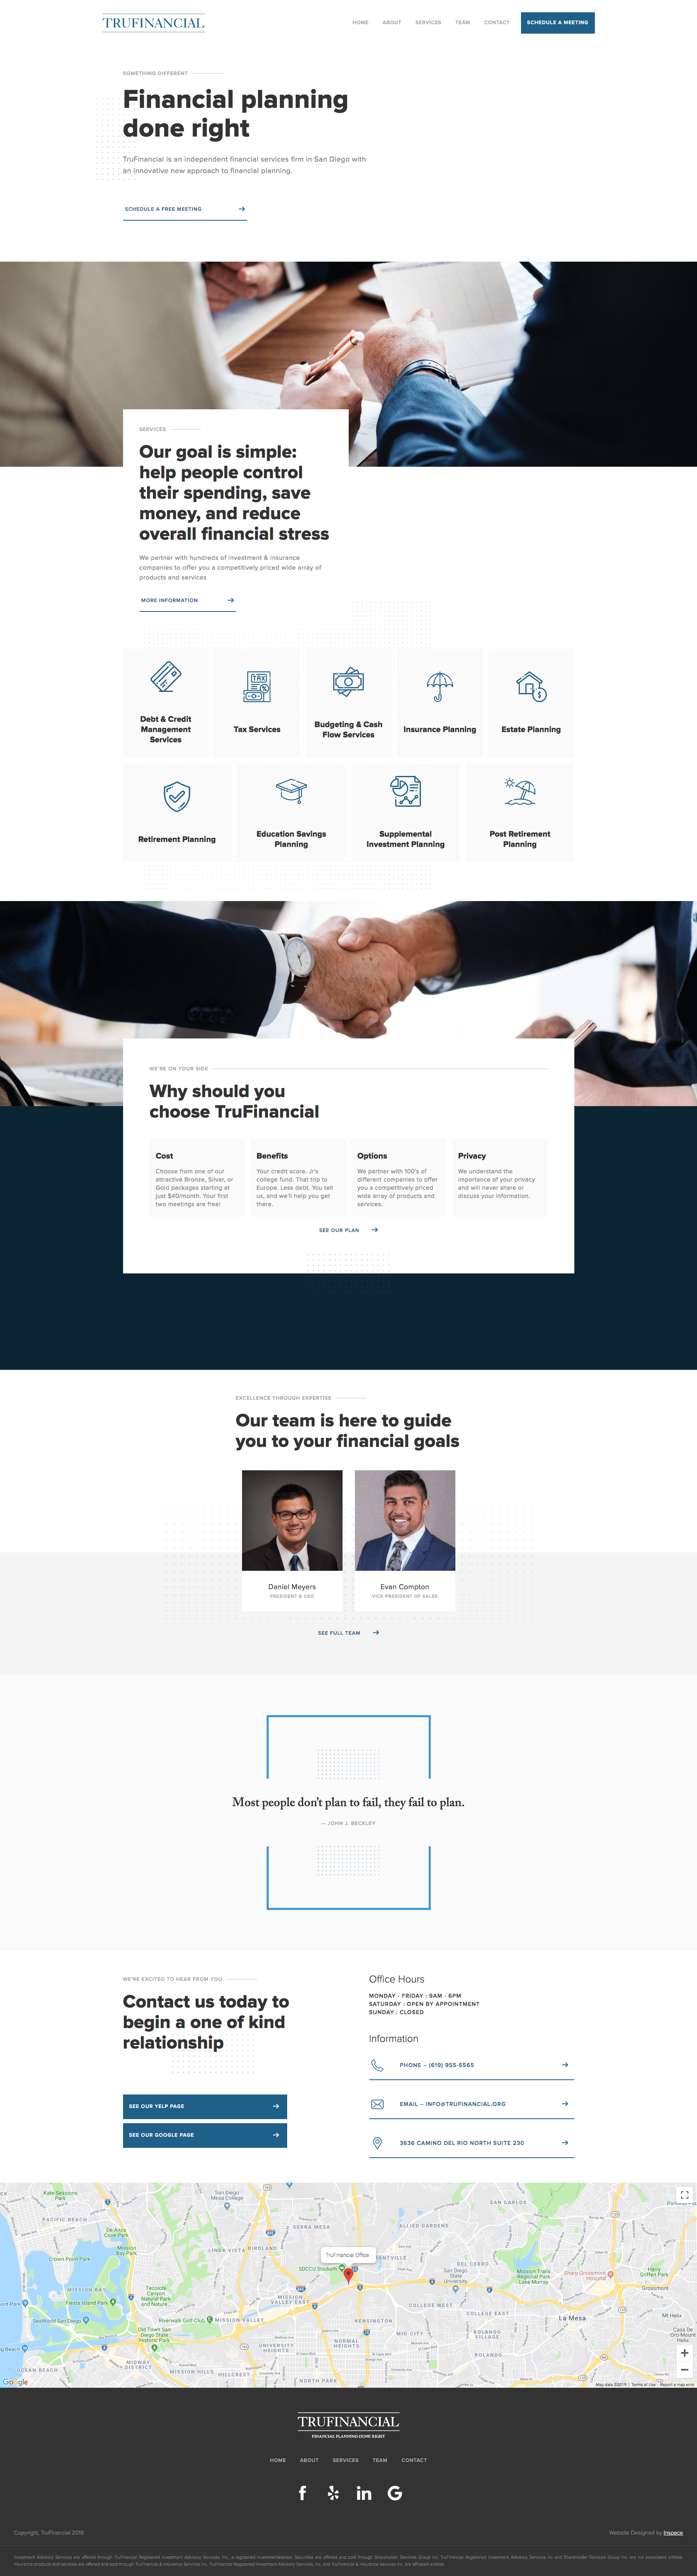 TruFinancial Website Preview